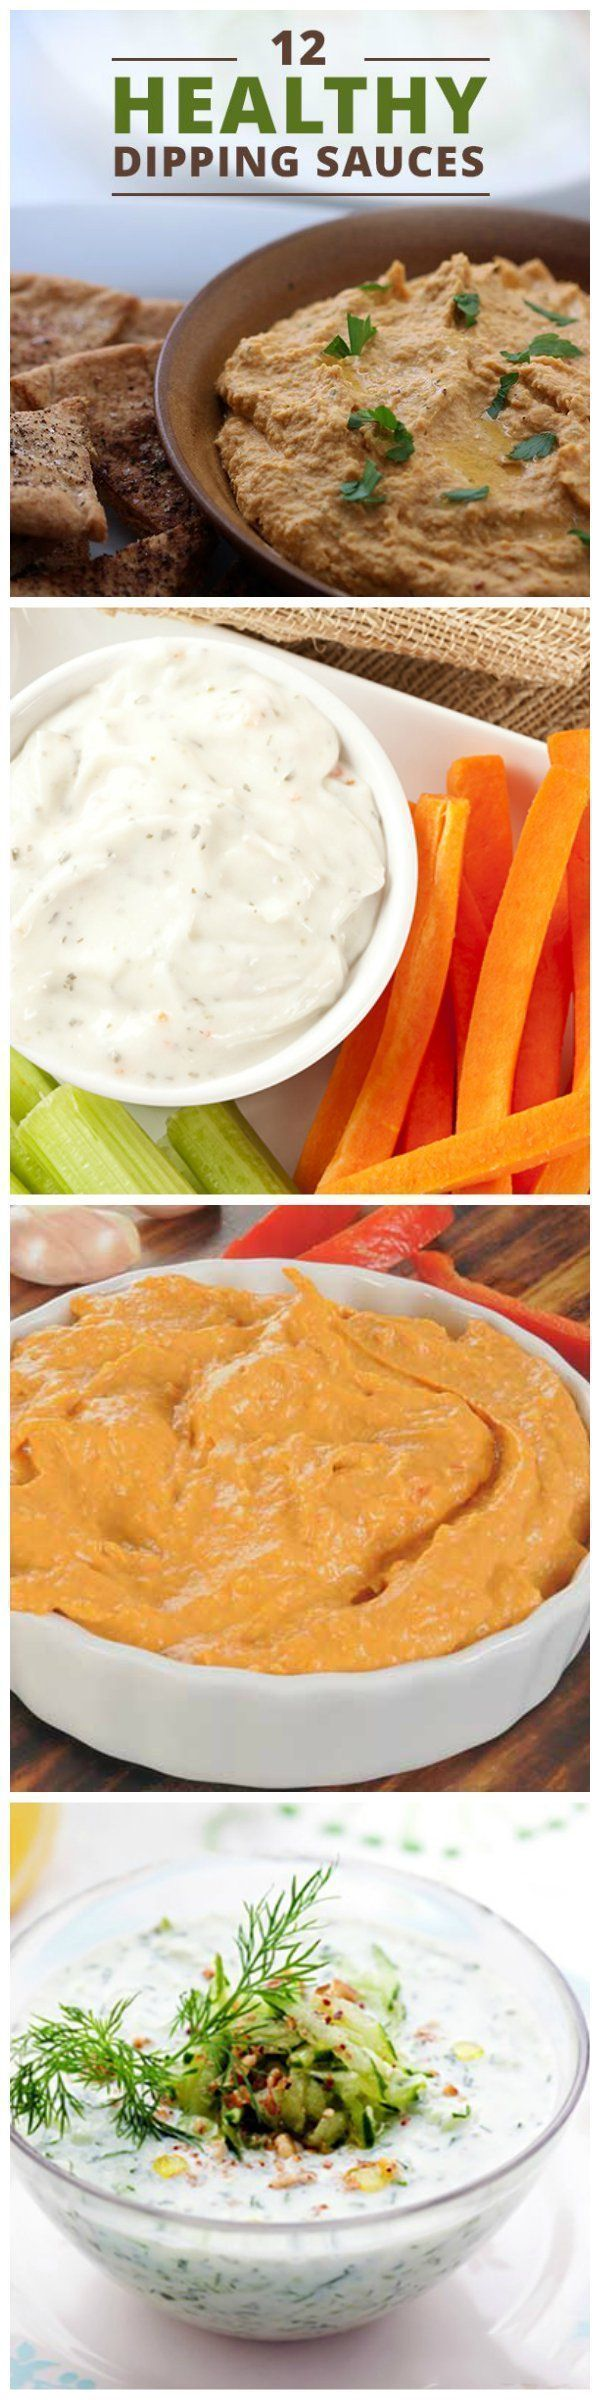 12 Healthy Dipping Sauces for the perfect, guiltless clean eating snack! #hummus #guacamole #ranchdip